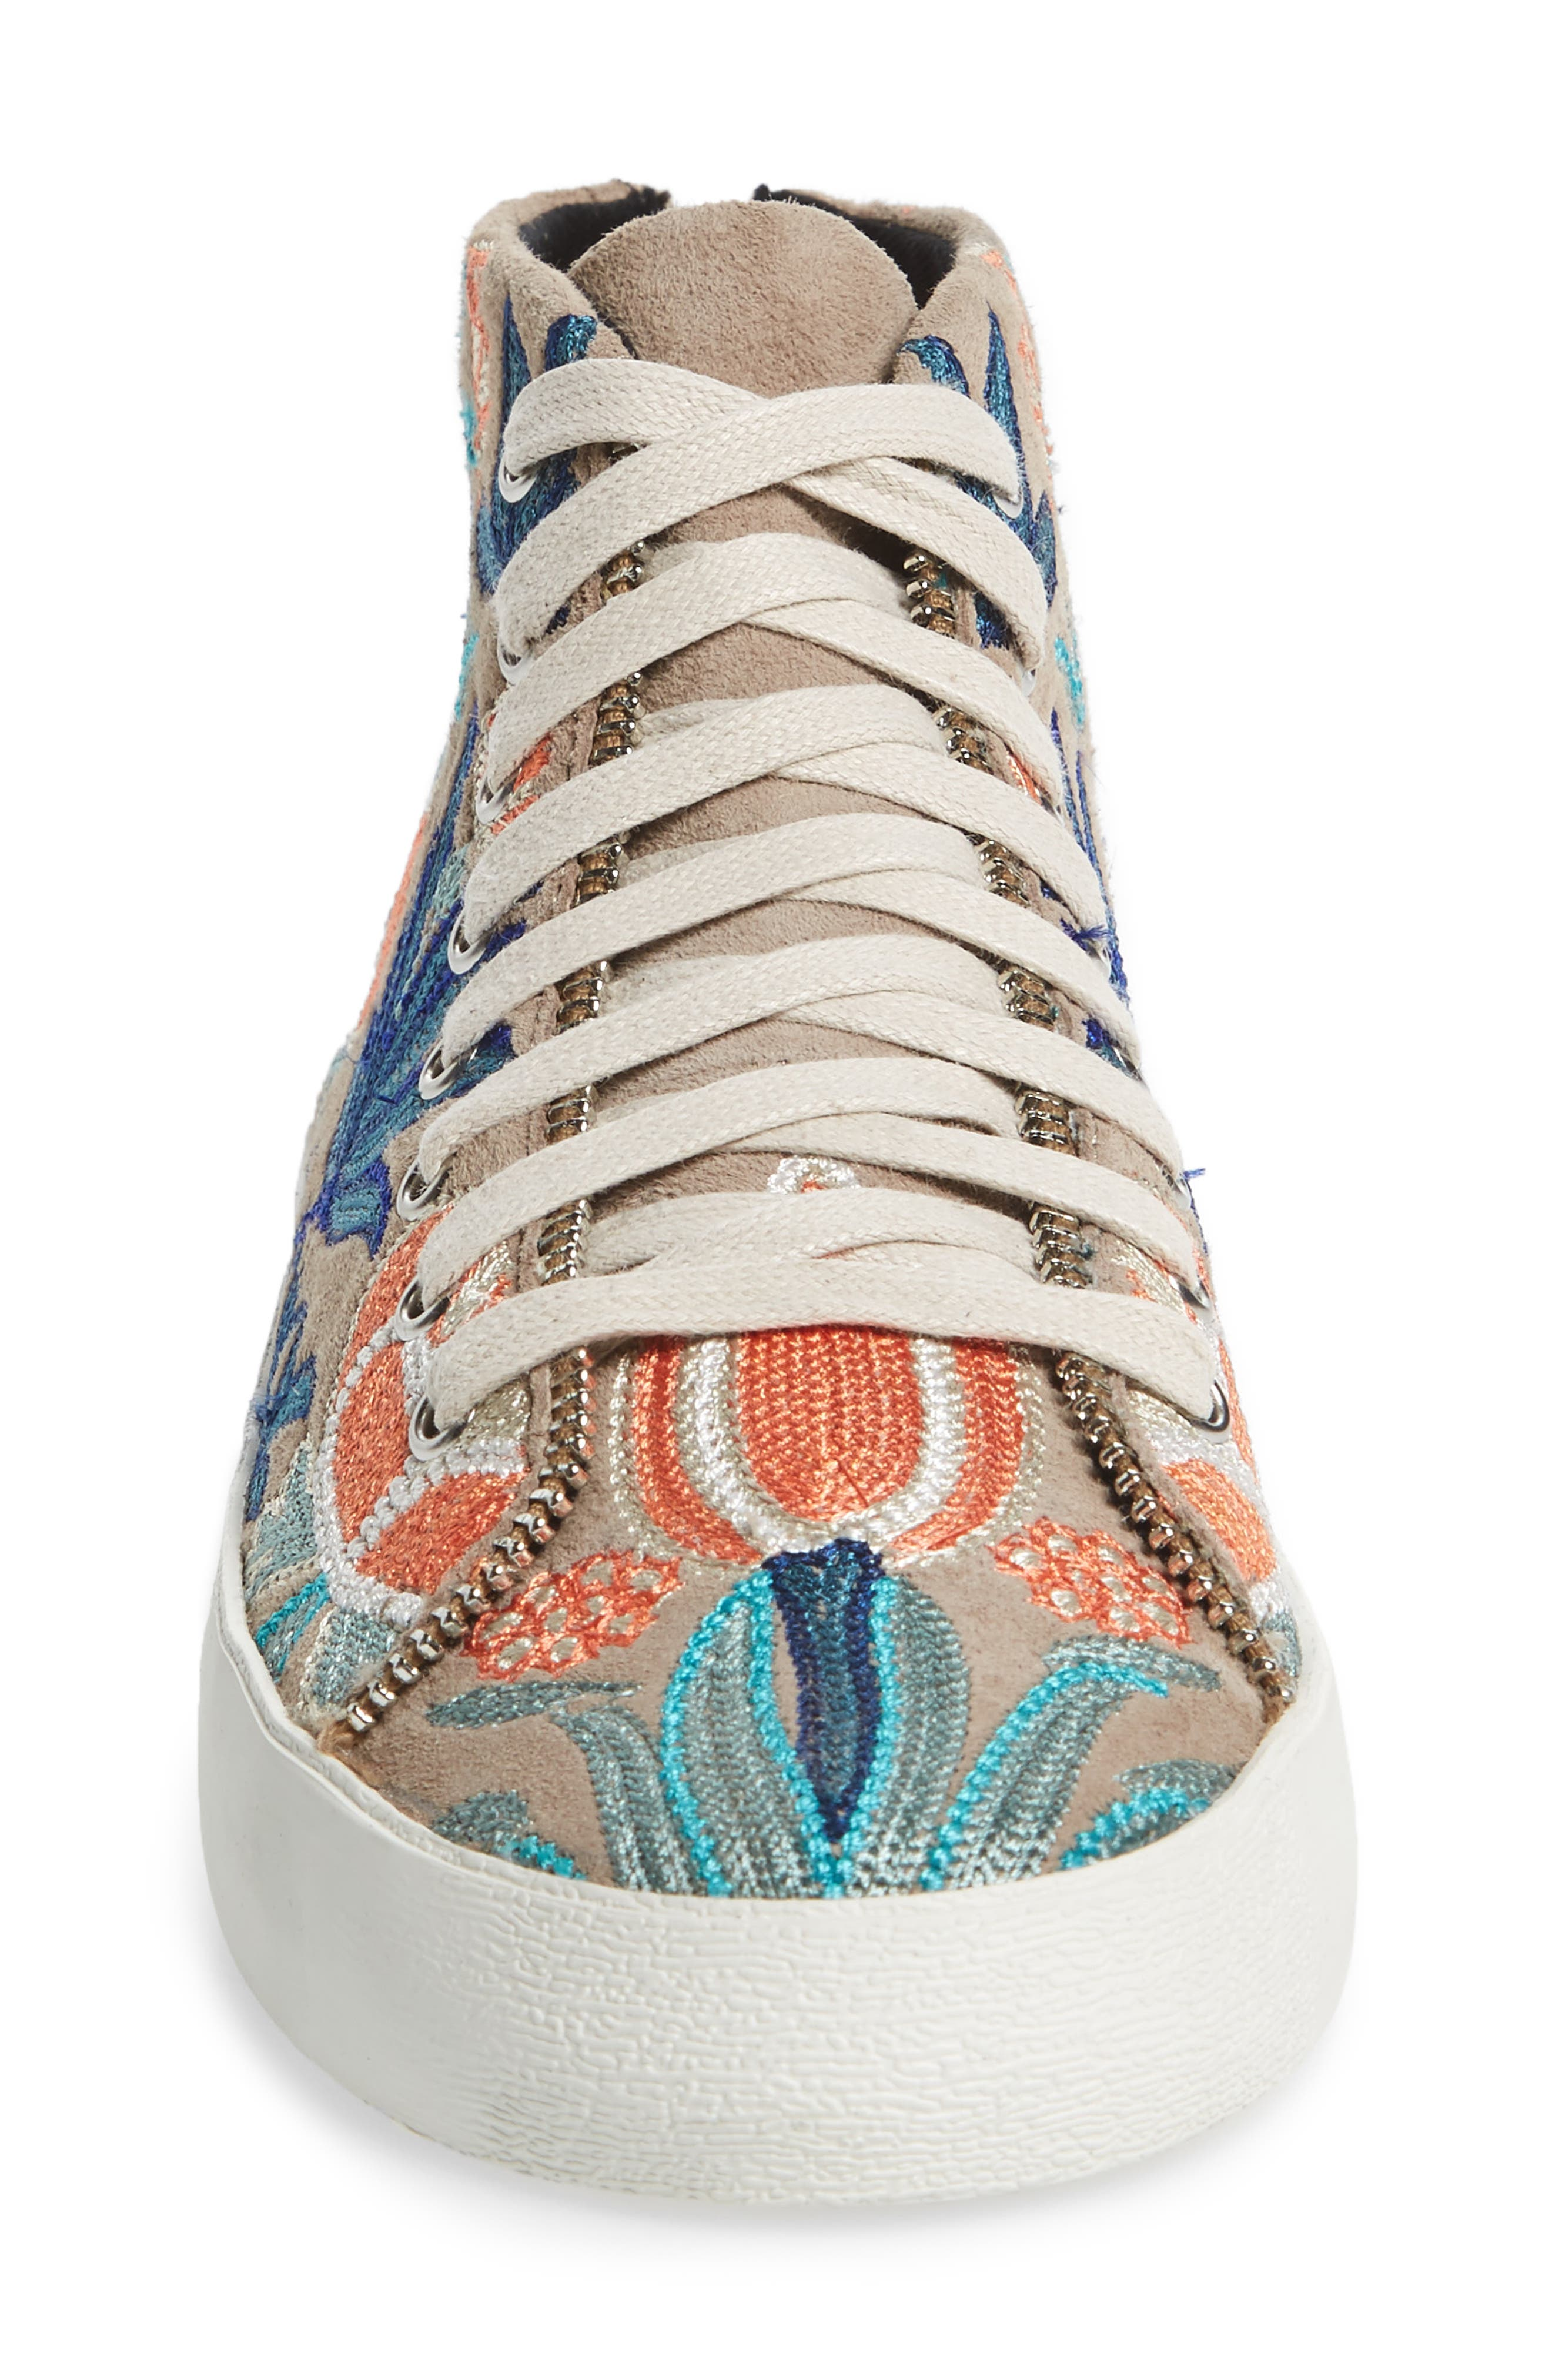 Zaina Embroidered Sneaker,                             Alternate thumbnail 4, color,                             Sand